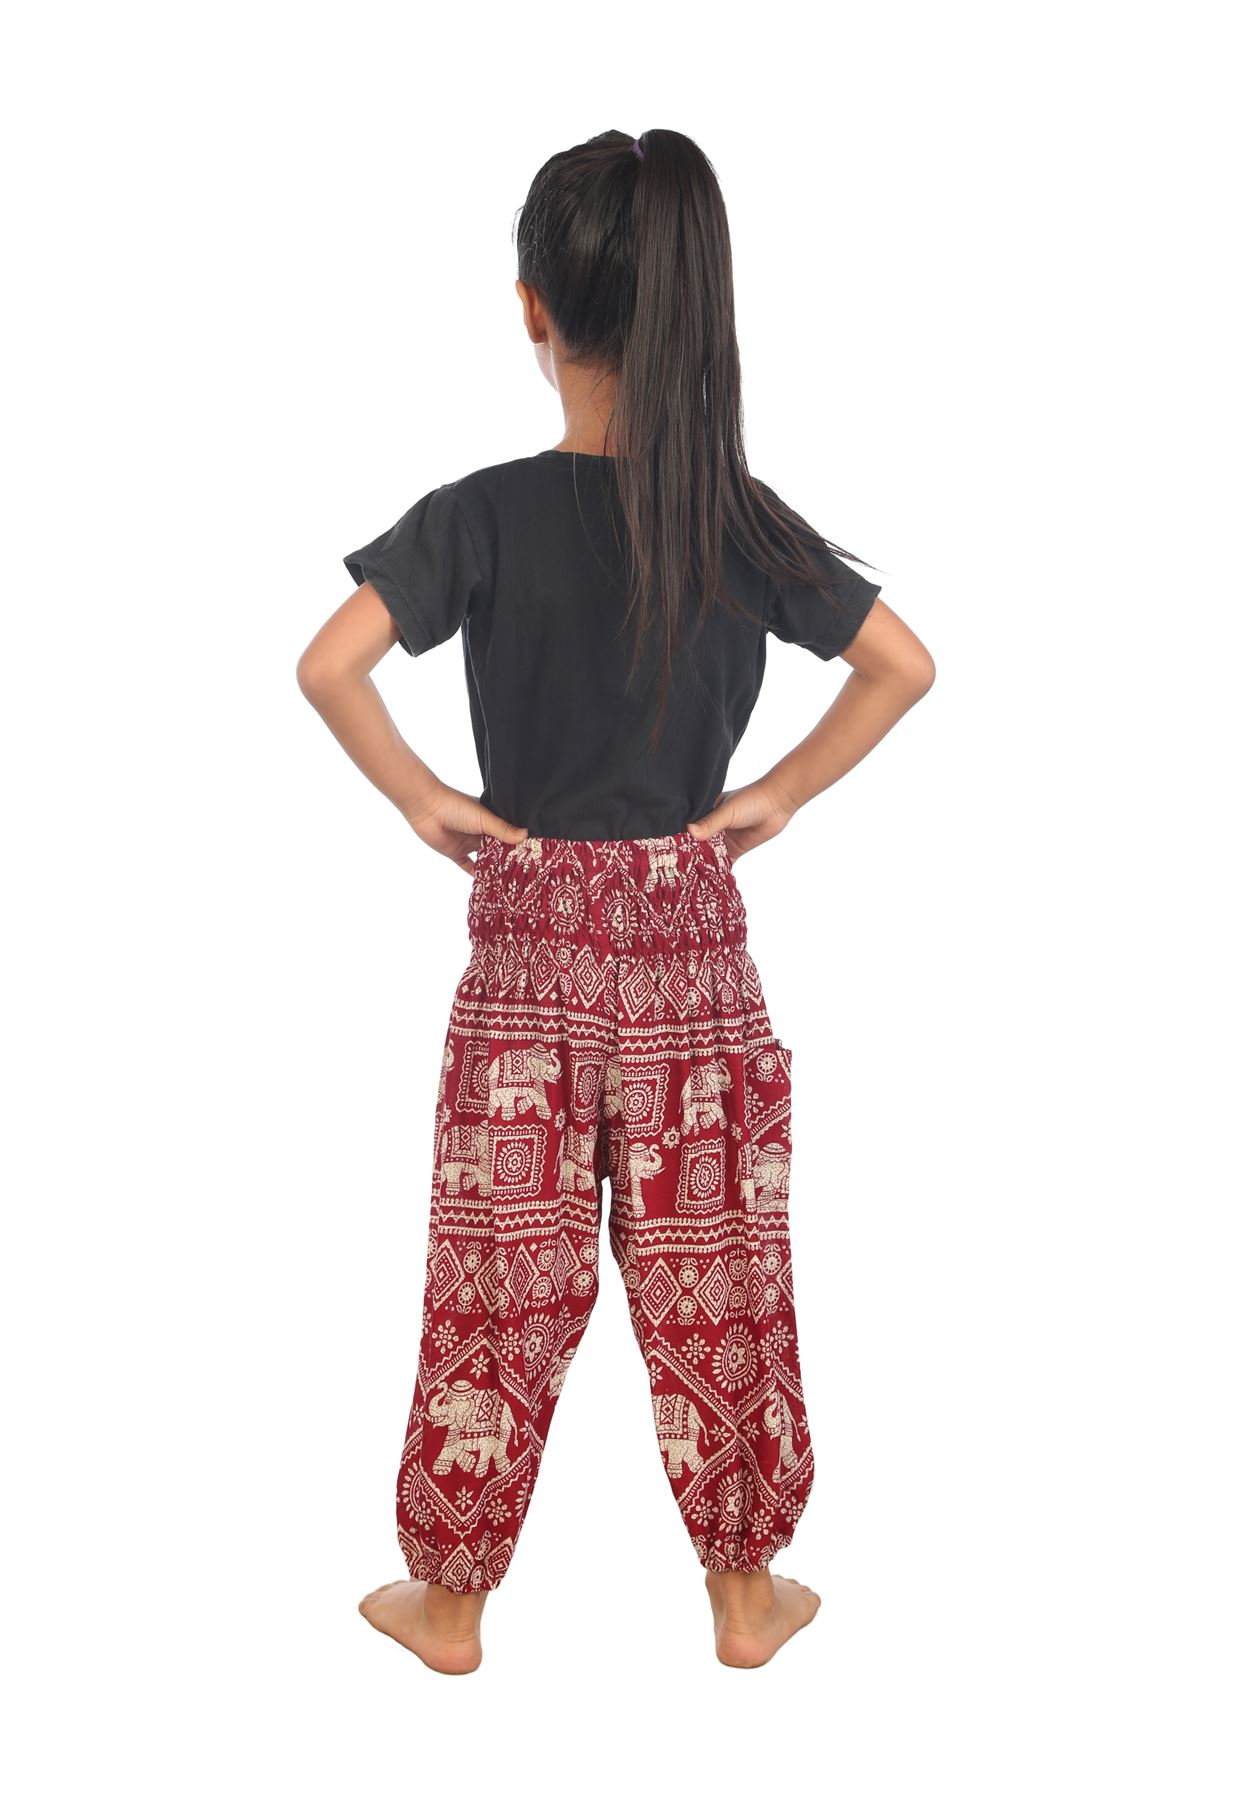 Find the best selection of cheap kids harem pants in bulk here at metools.ml Including white harem pant suit and velvet women harem pants at wholesale prices from kids harem pants manufacturers. Source discount and high quality products in hundreds of categories wholesale direct from China.